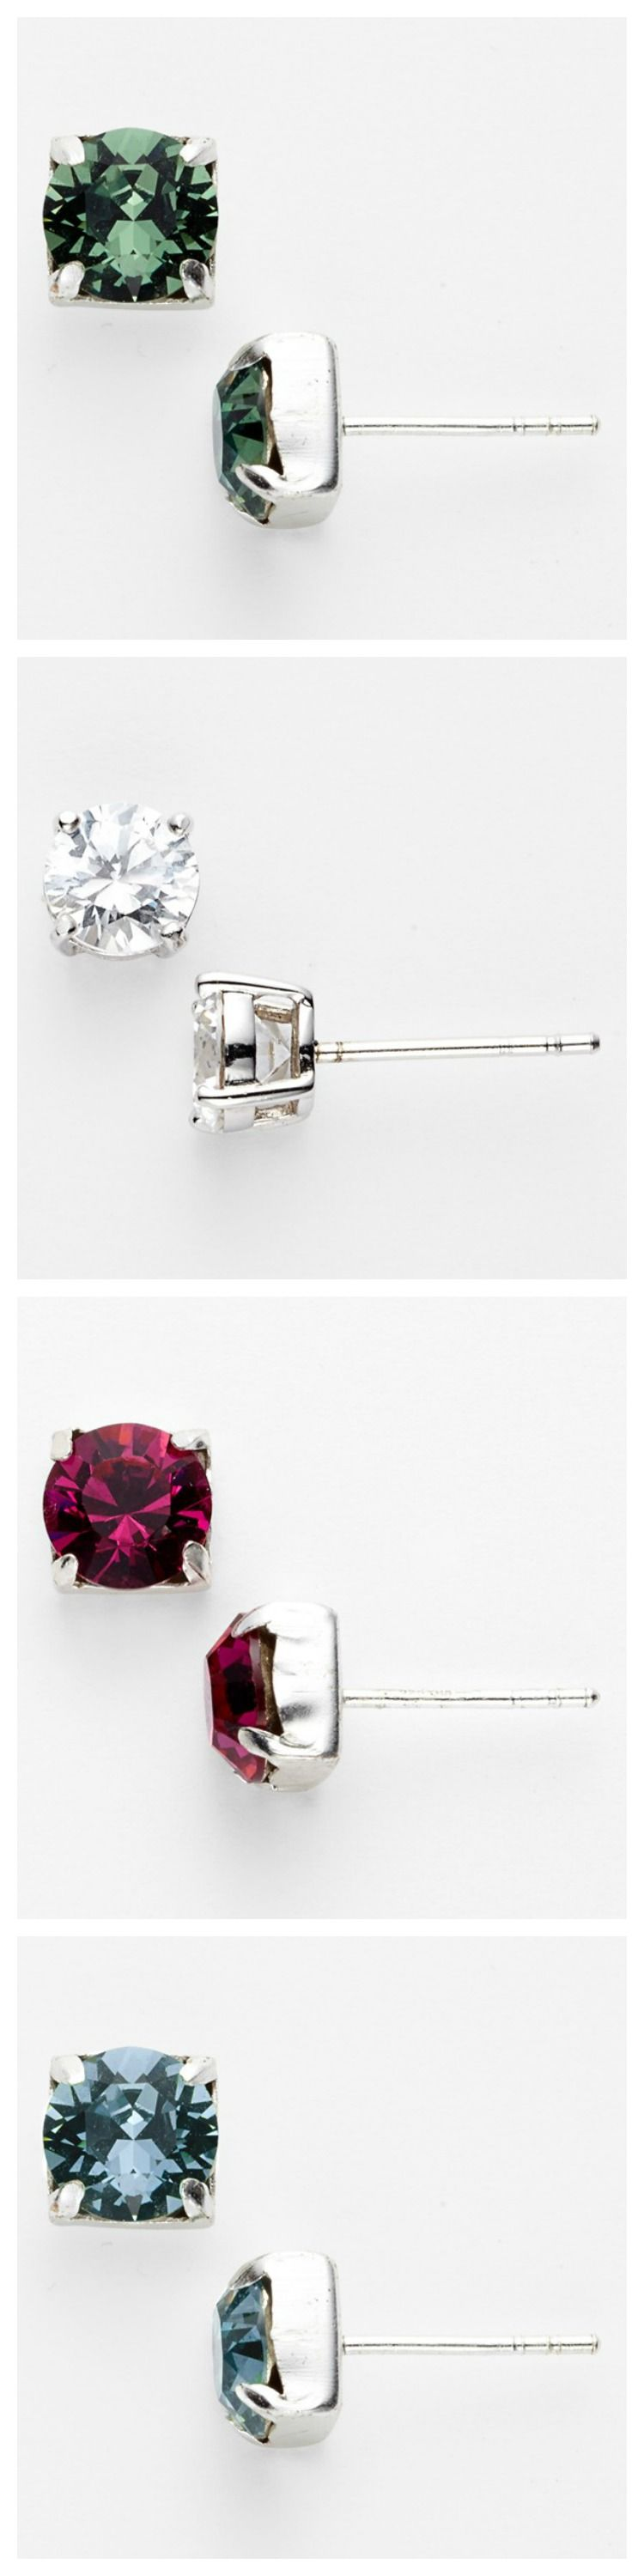 studs stud spade images rose by alisonlewis best these gold kate ear on sparkly and pinterest love earrings ears